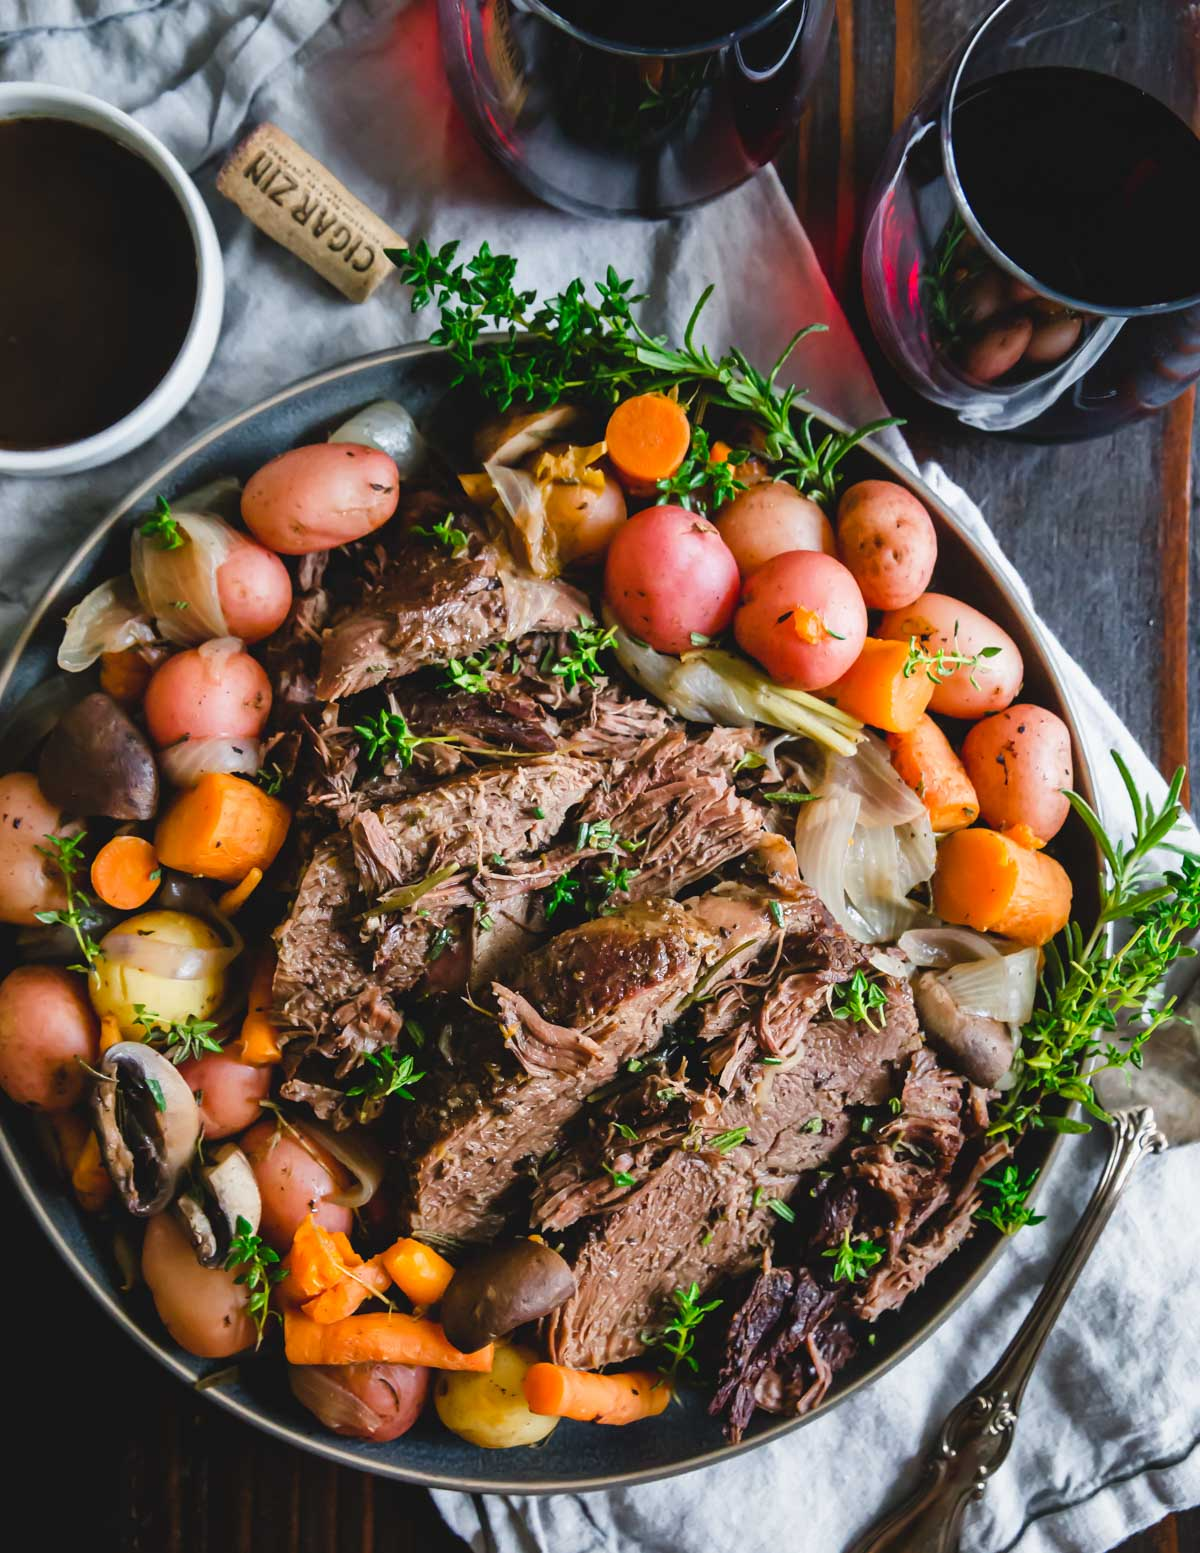 This easy Instant Pot venison roast is cooked with potatoes, carrots, onions and mushrooms for a comforting winter meal.